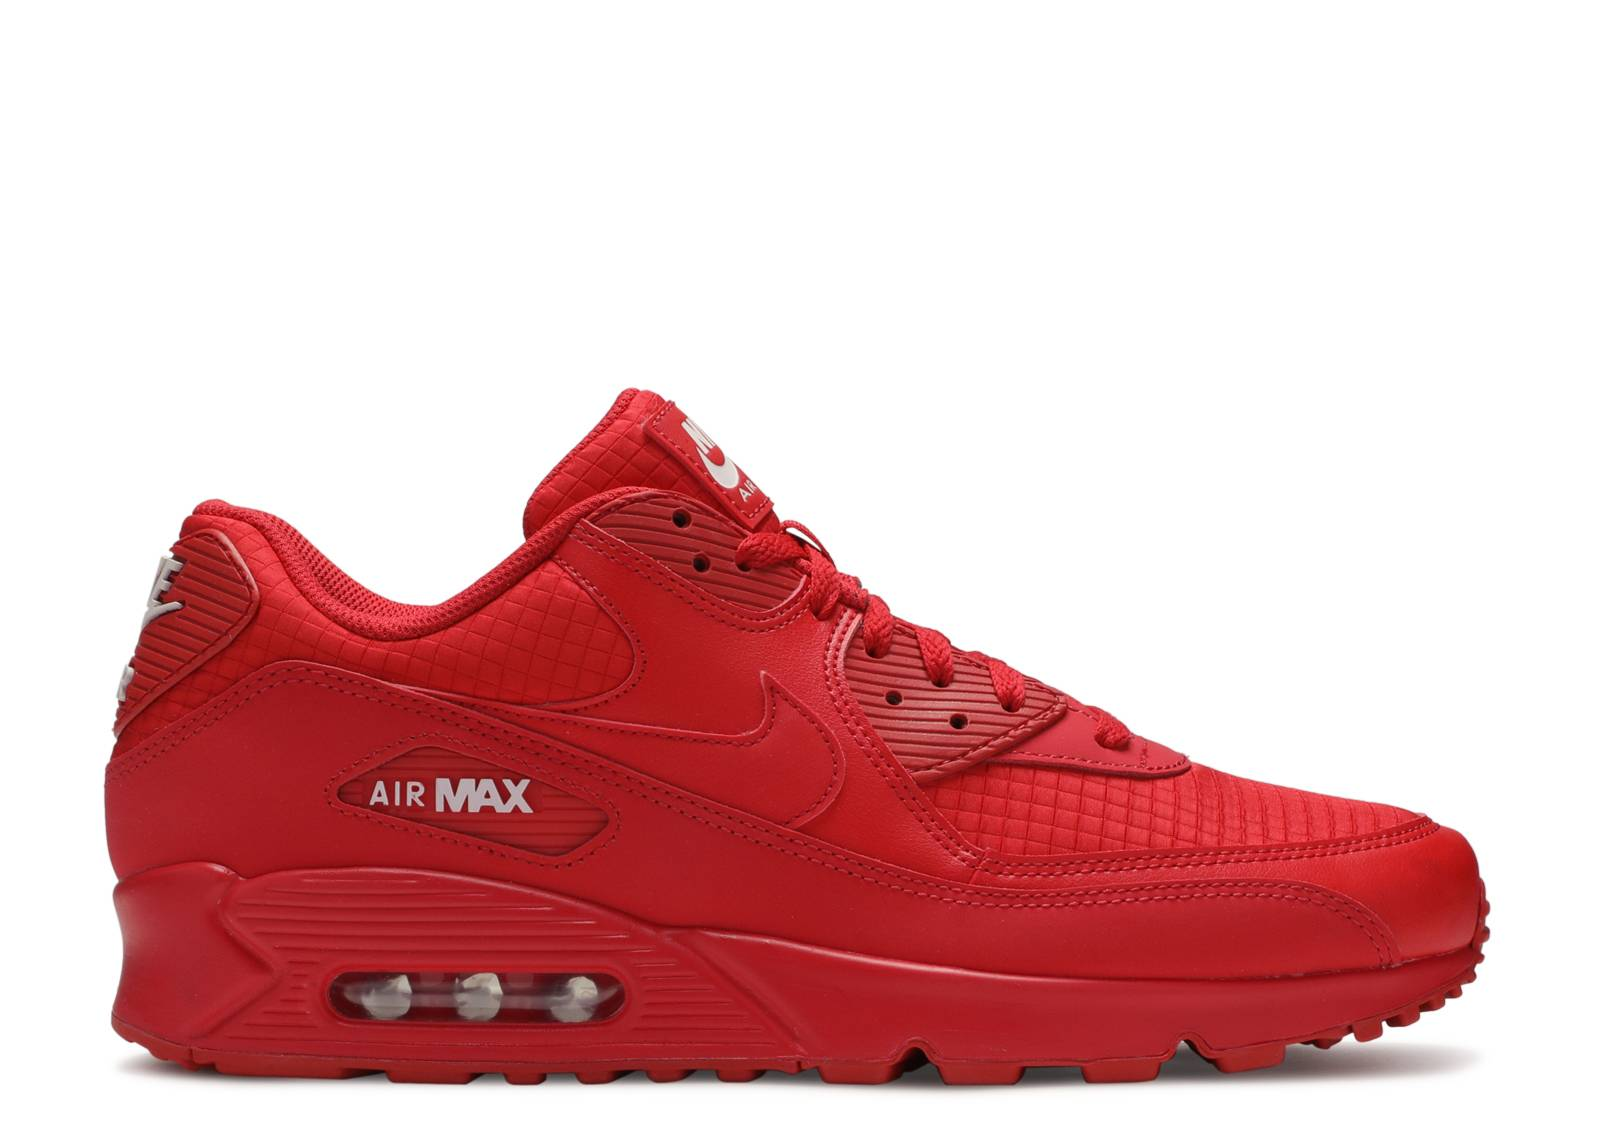 16943c92ed Nike Air Max 90 - Men's & Women's Shoes | Flight Club